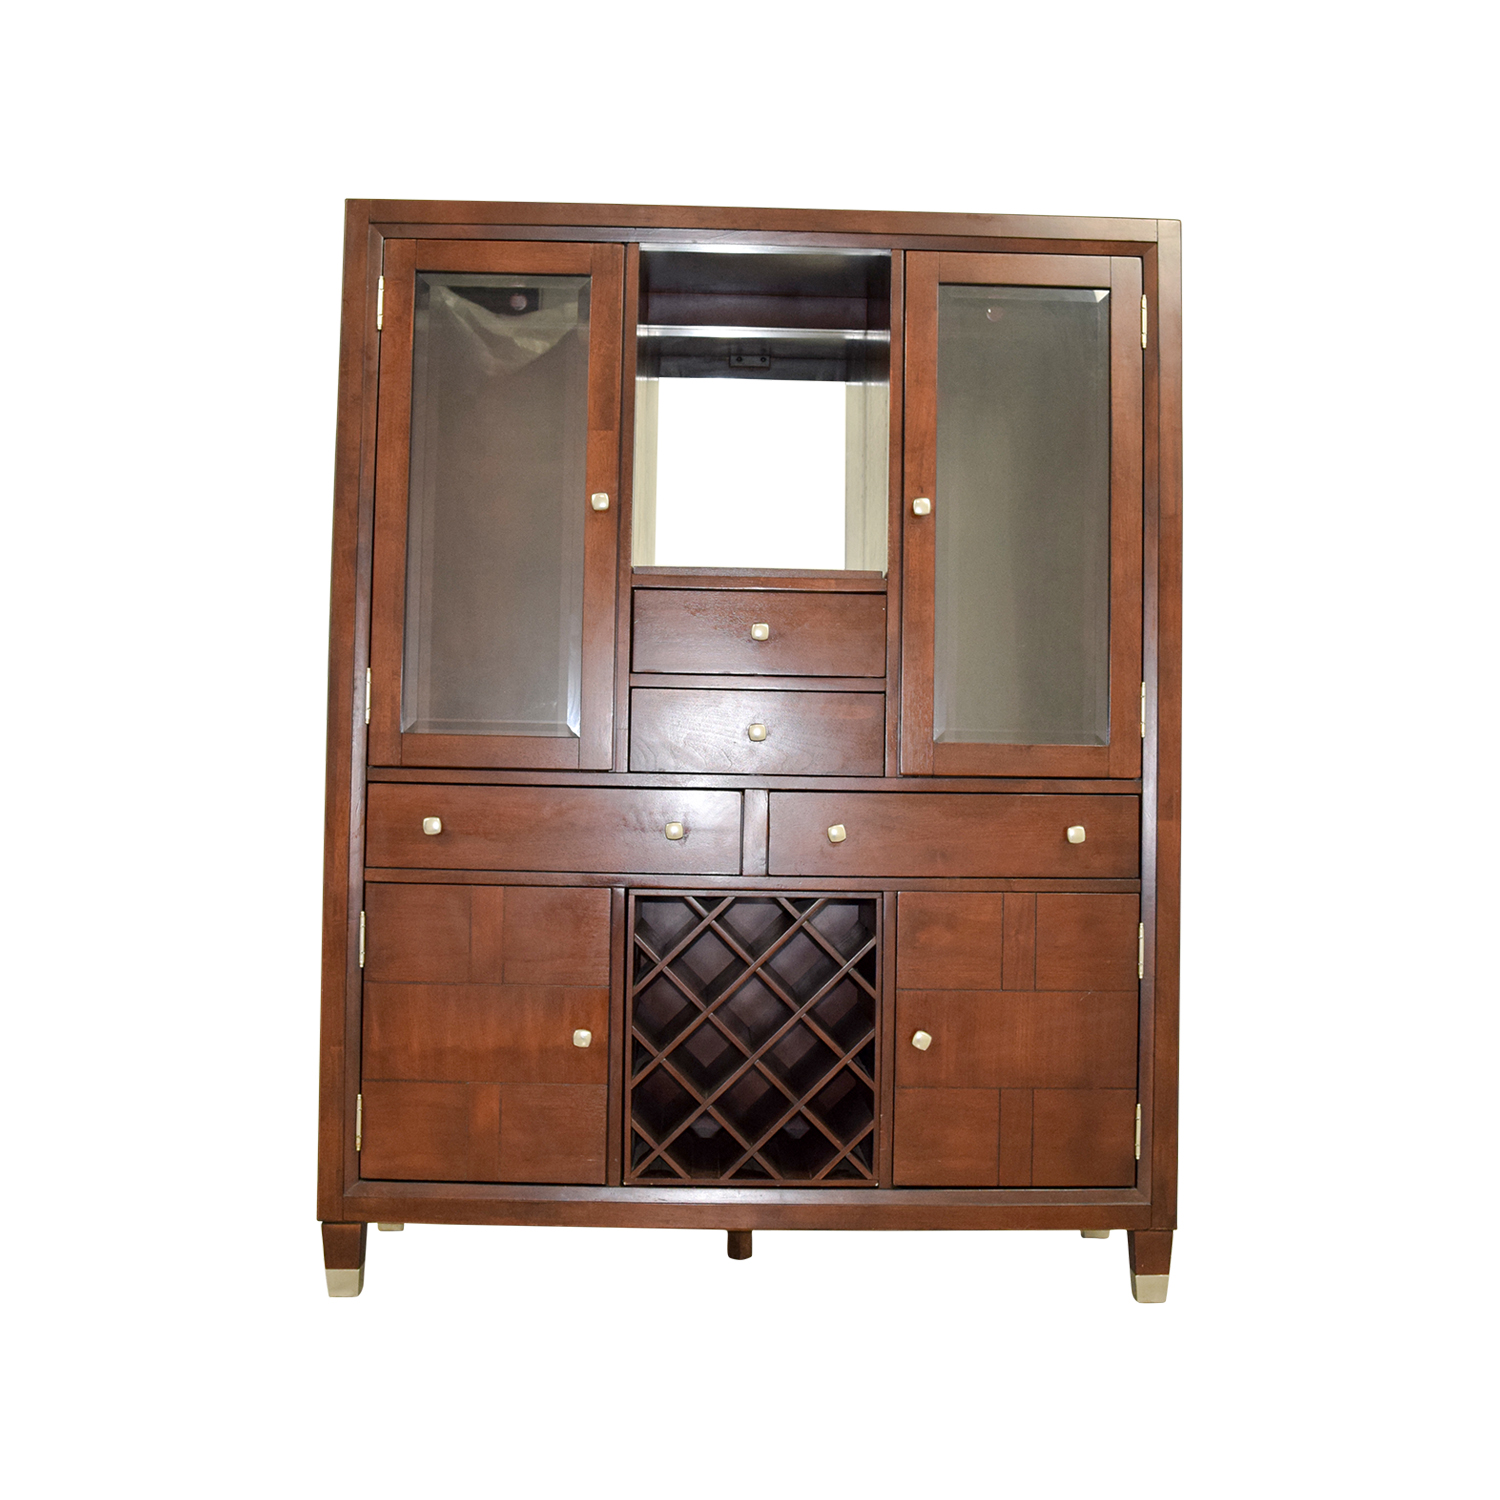 Broyhill Broyhill Curio China Cabinet dark wood